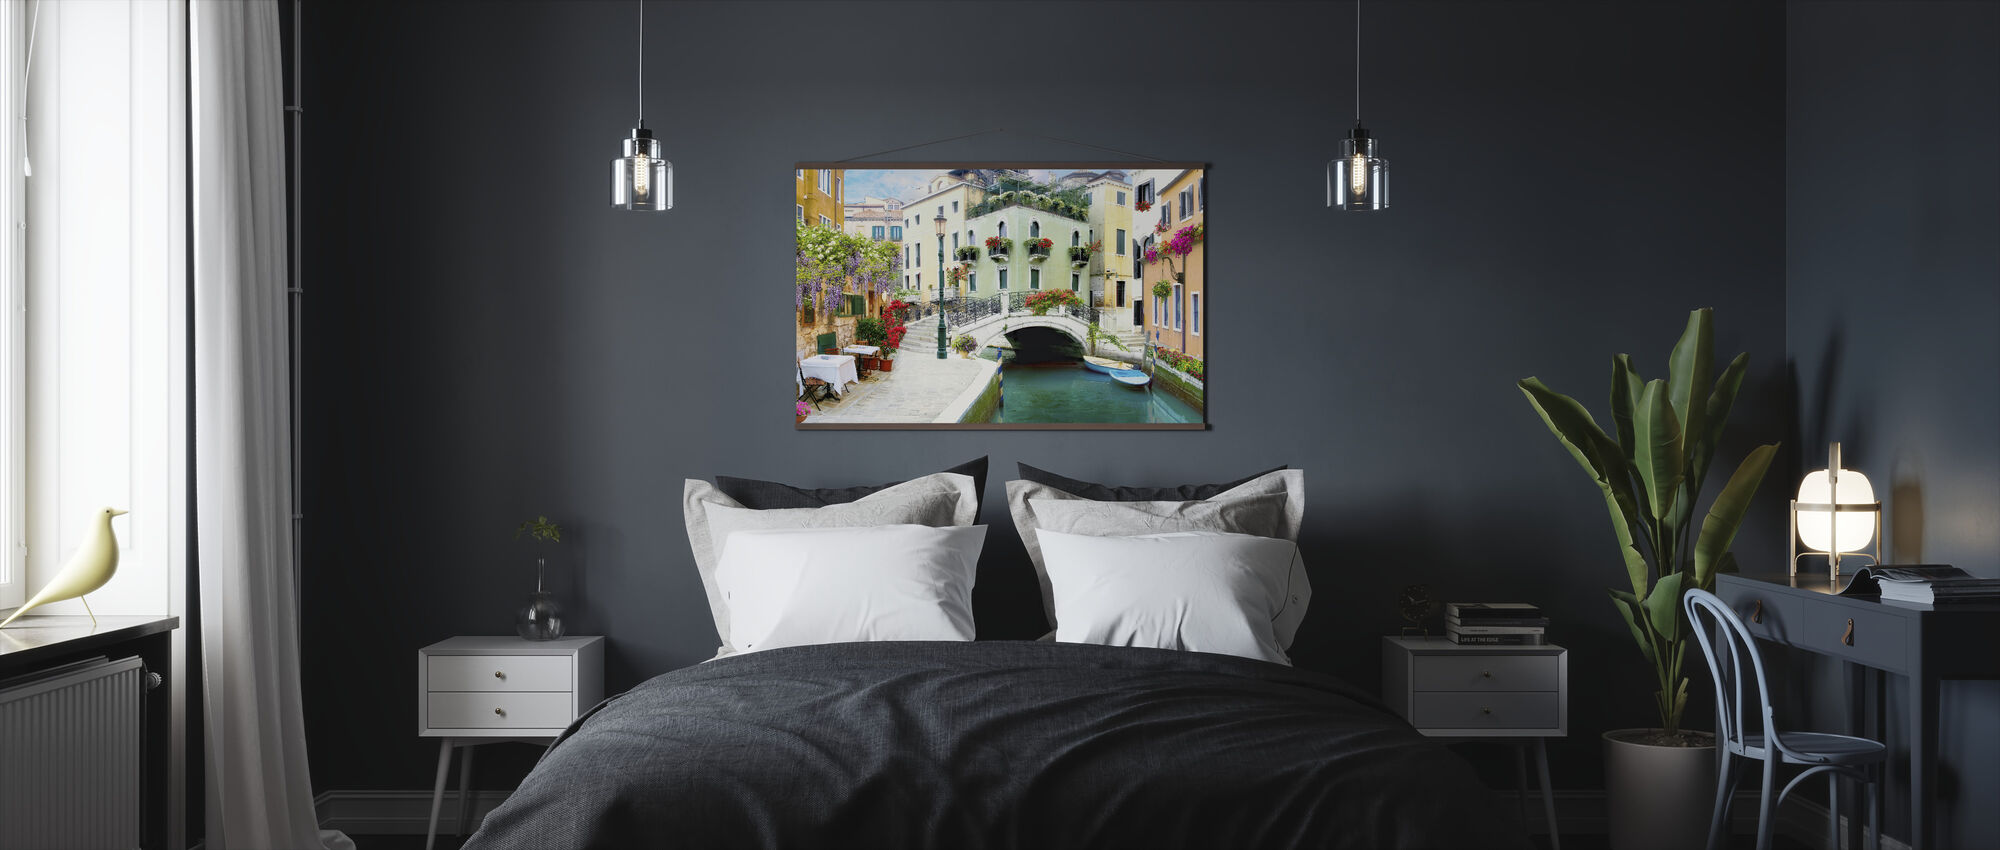 Venice Bridge - Poster - Bedroom